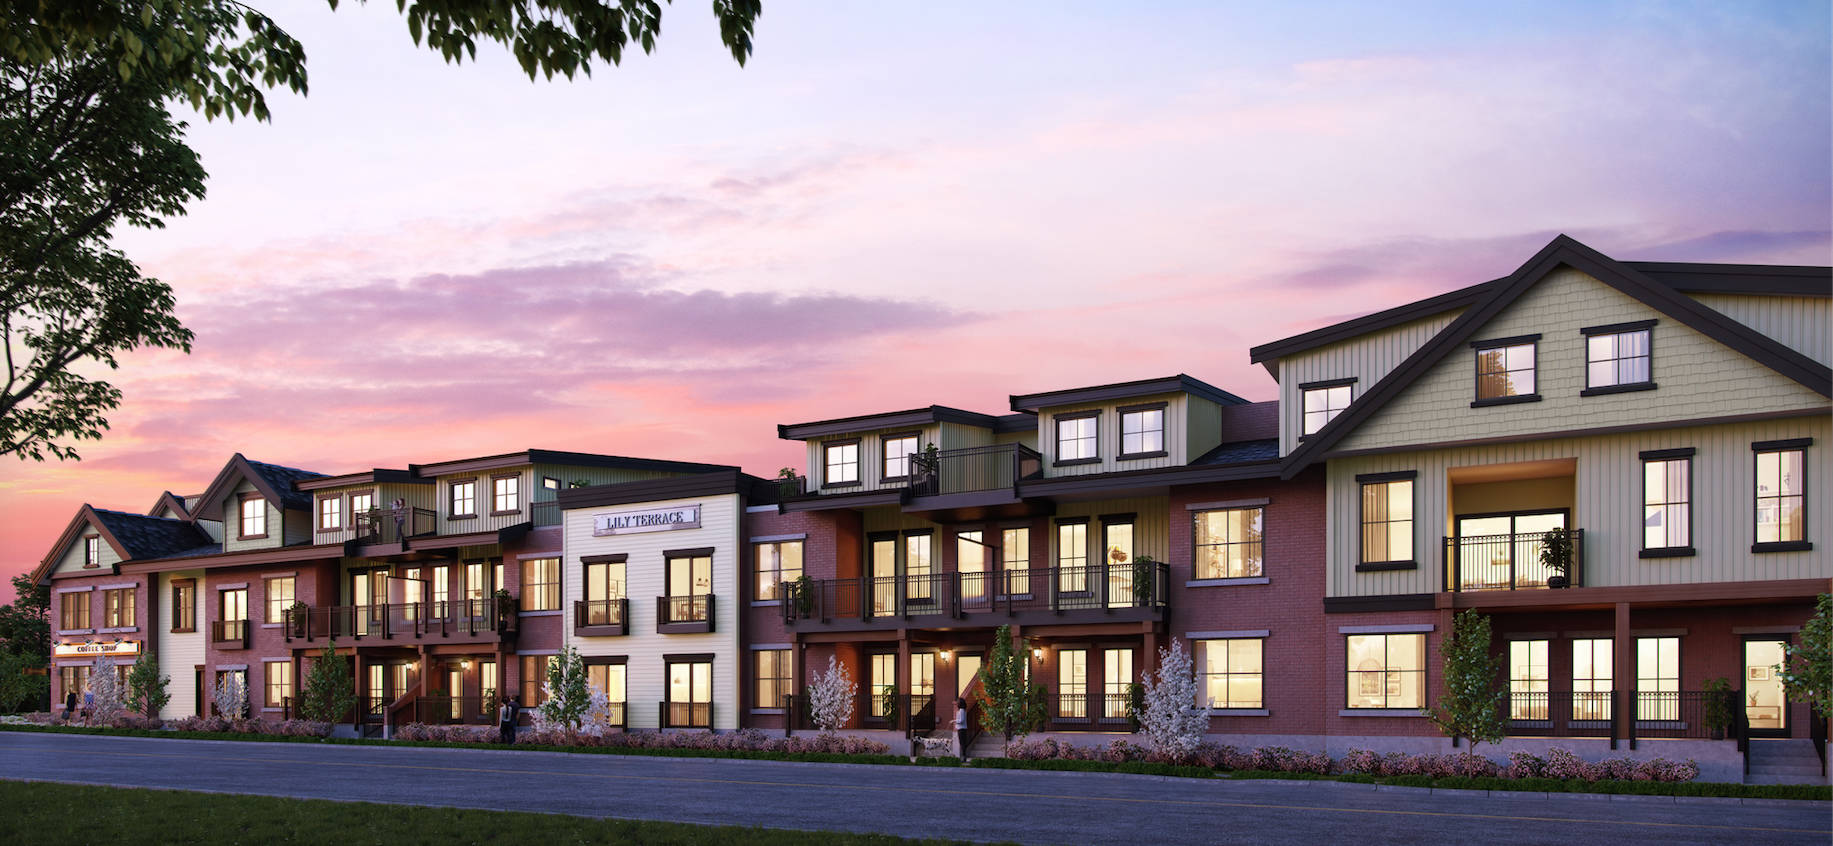 Lilly Terrace by Lanstone Homes will offer 24 luxury condos in Fort Langley. Sales begin mid-March.